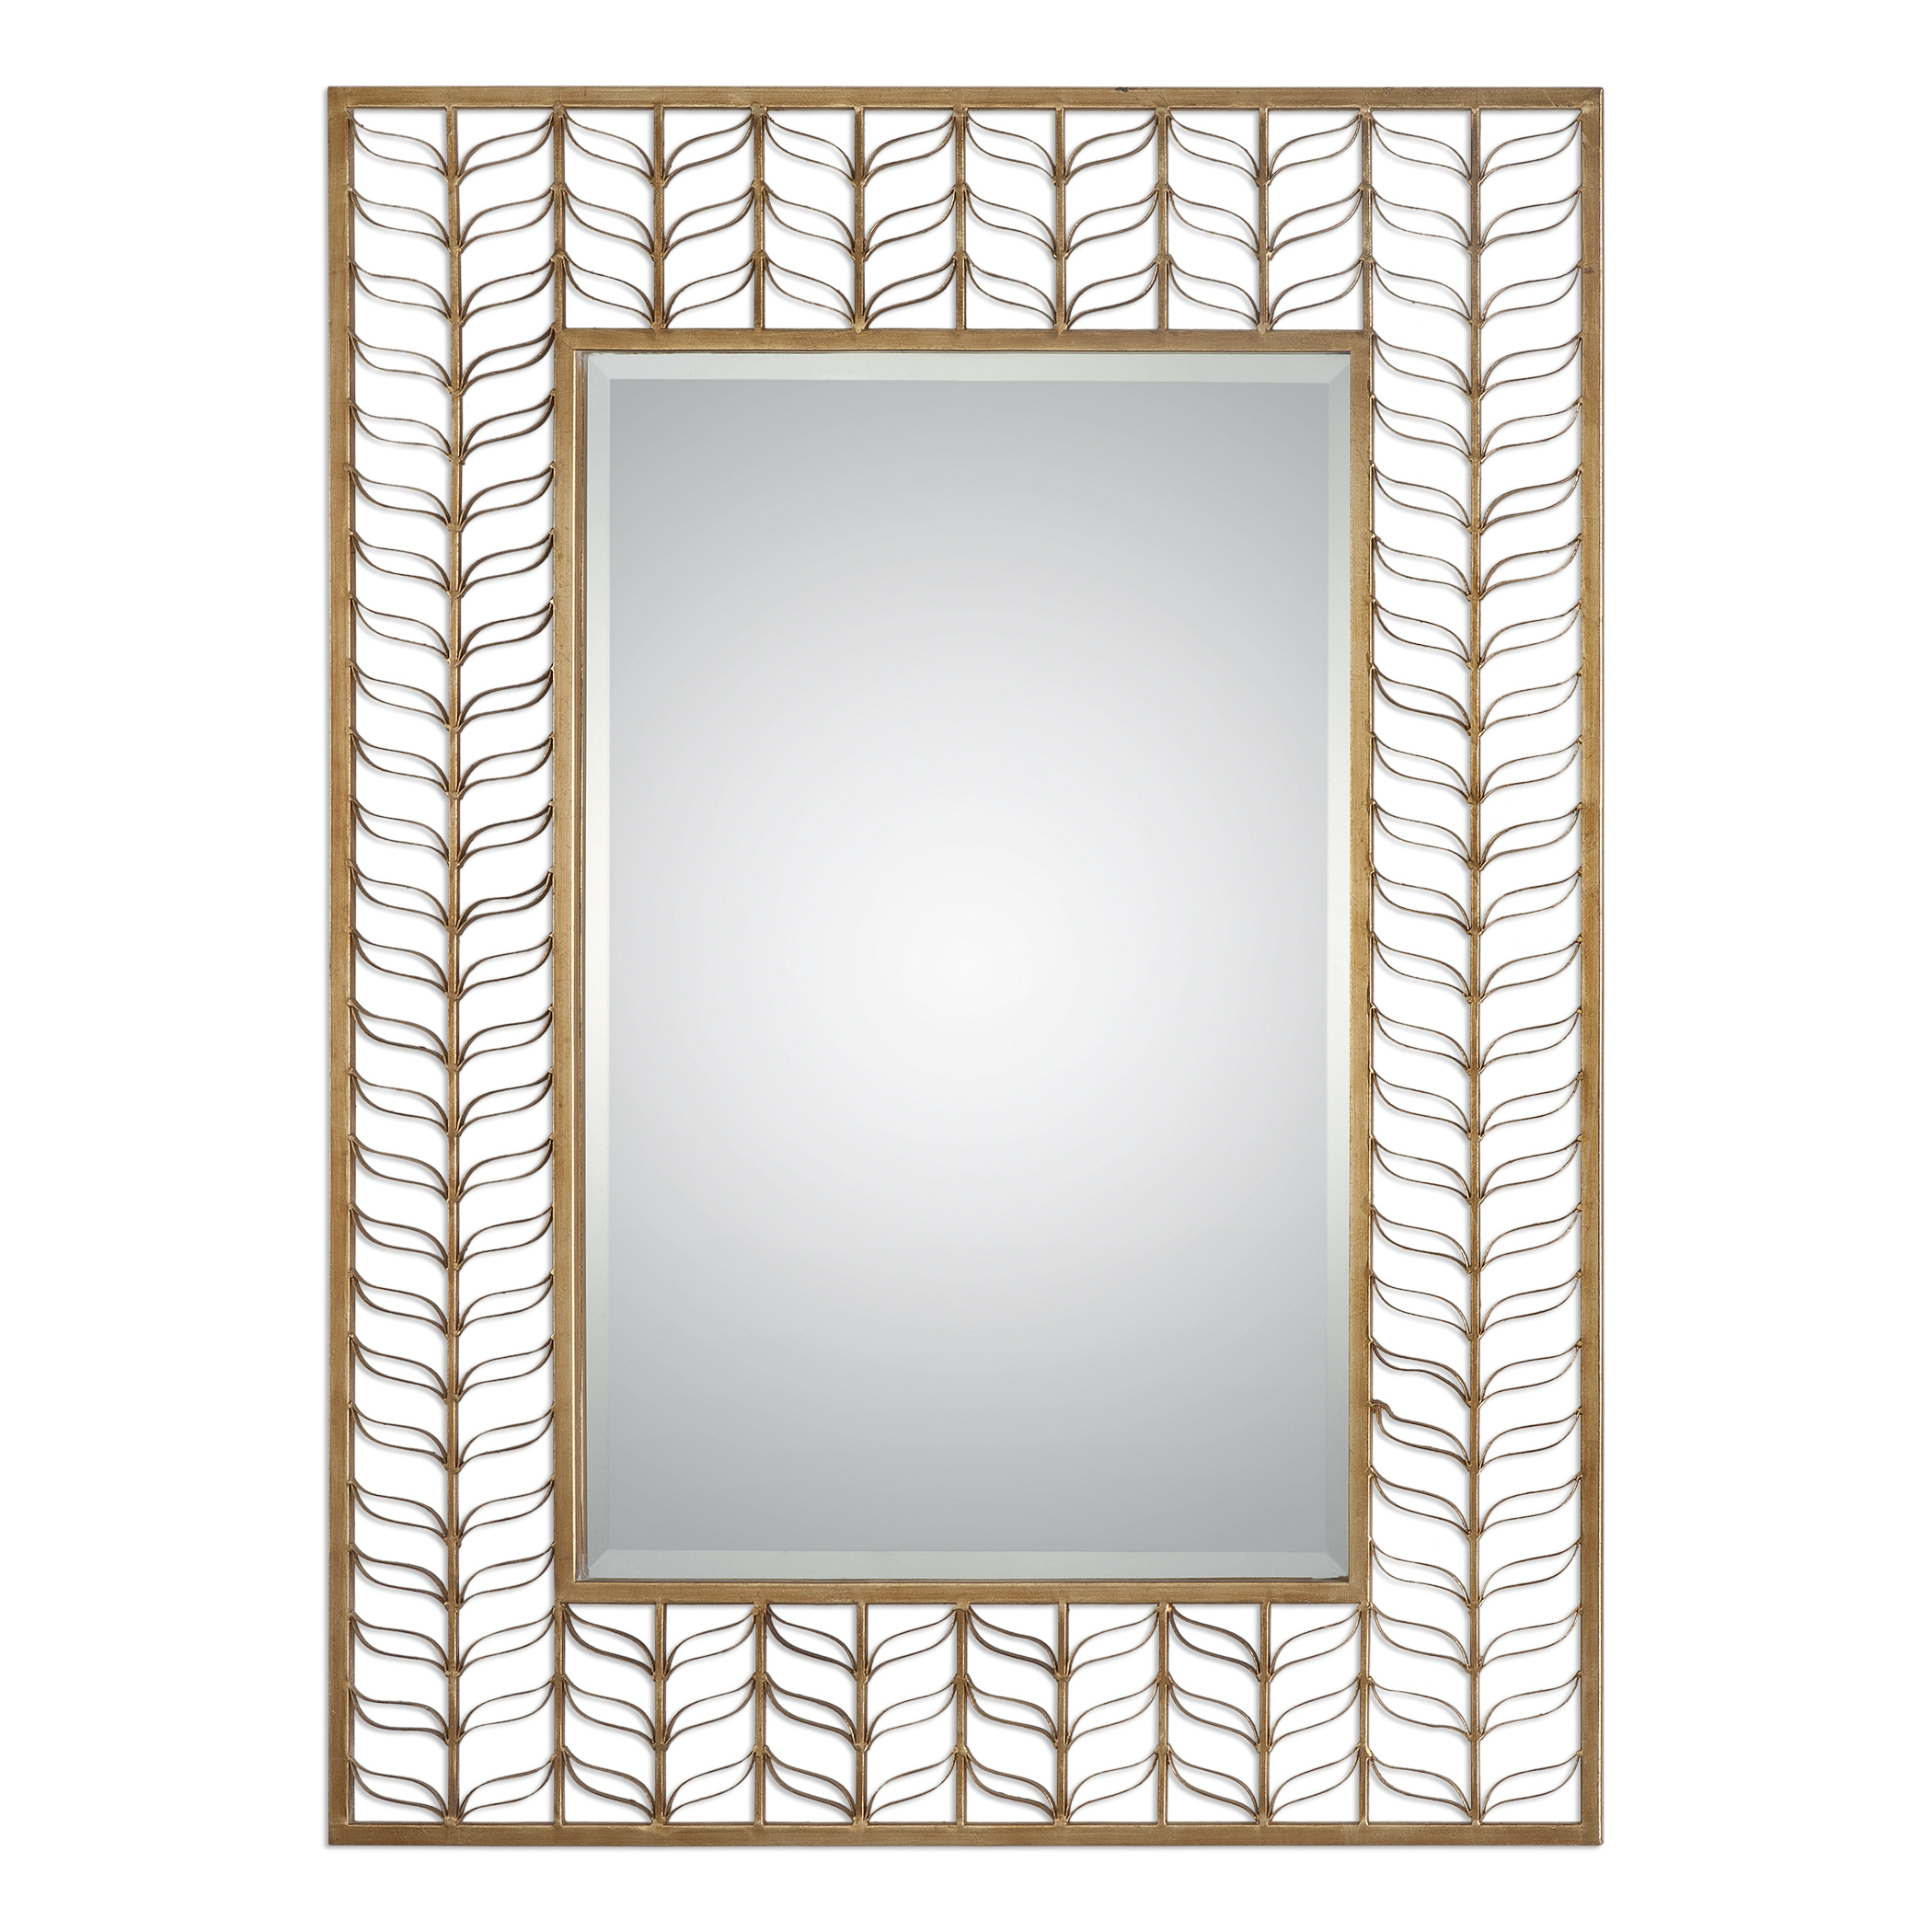 Uttermost Mirrors Phyllida Gold Mirror - Item Number: 09094